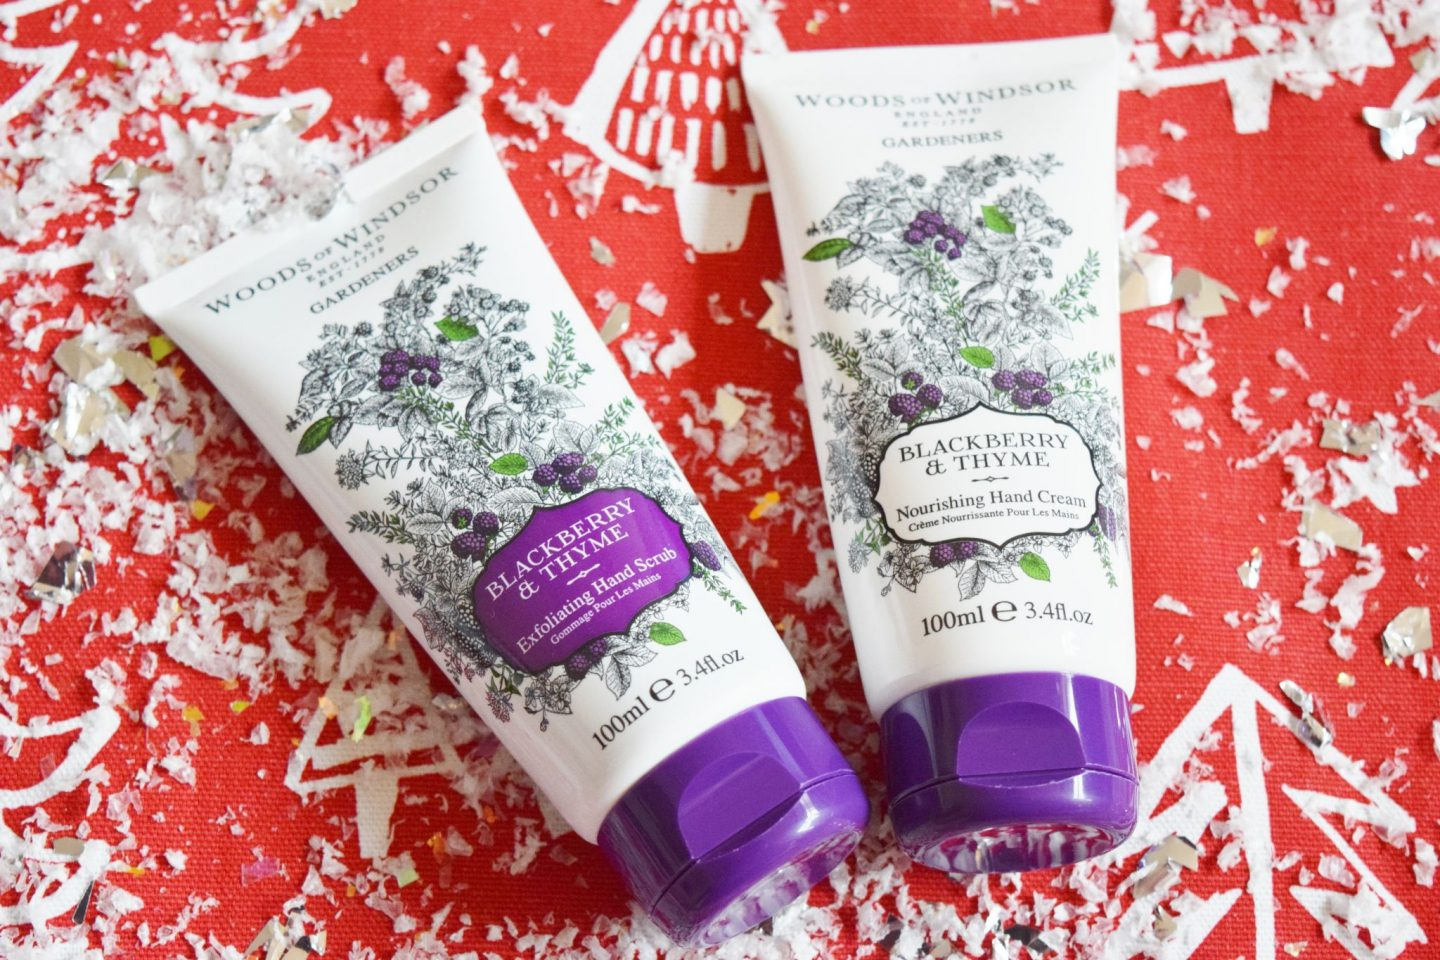 Wood of Windsor's Blackberry & Thyme Exfoliating Hand Scrub